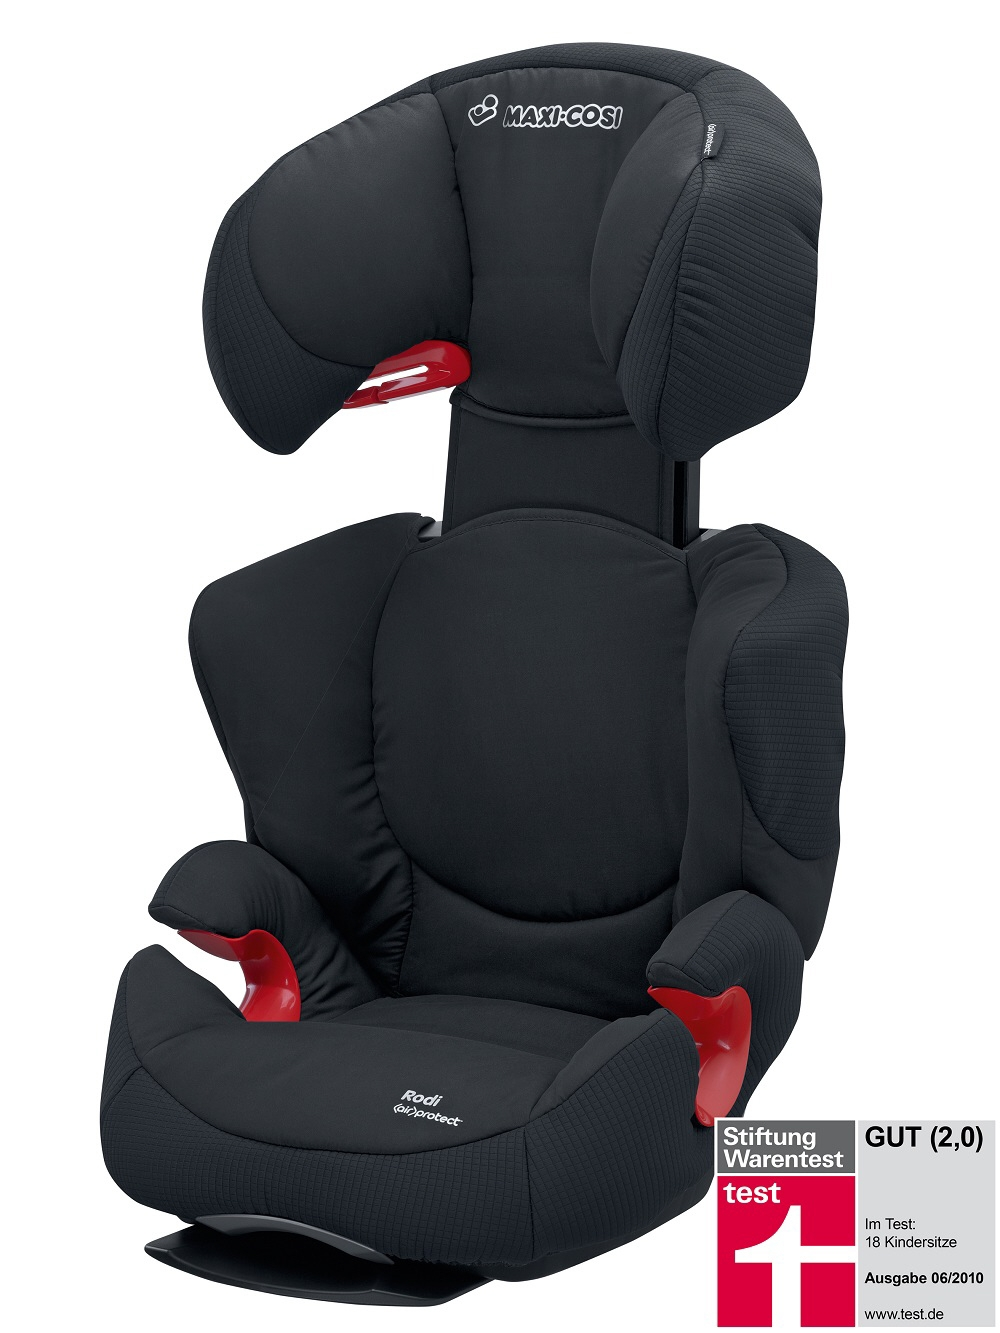 maxi cosi child car seat rodi air protect 2014 total black buy at kidsroom car seats. Black Bedroom Furniture Sets. Home Design Ideas